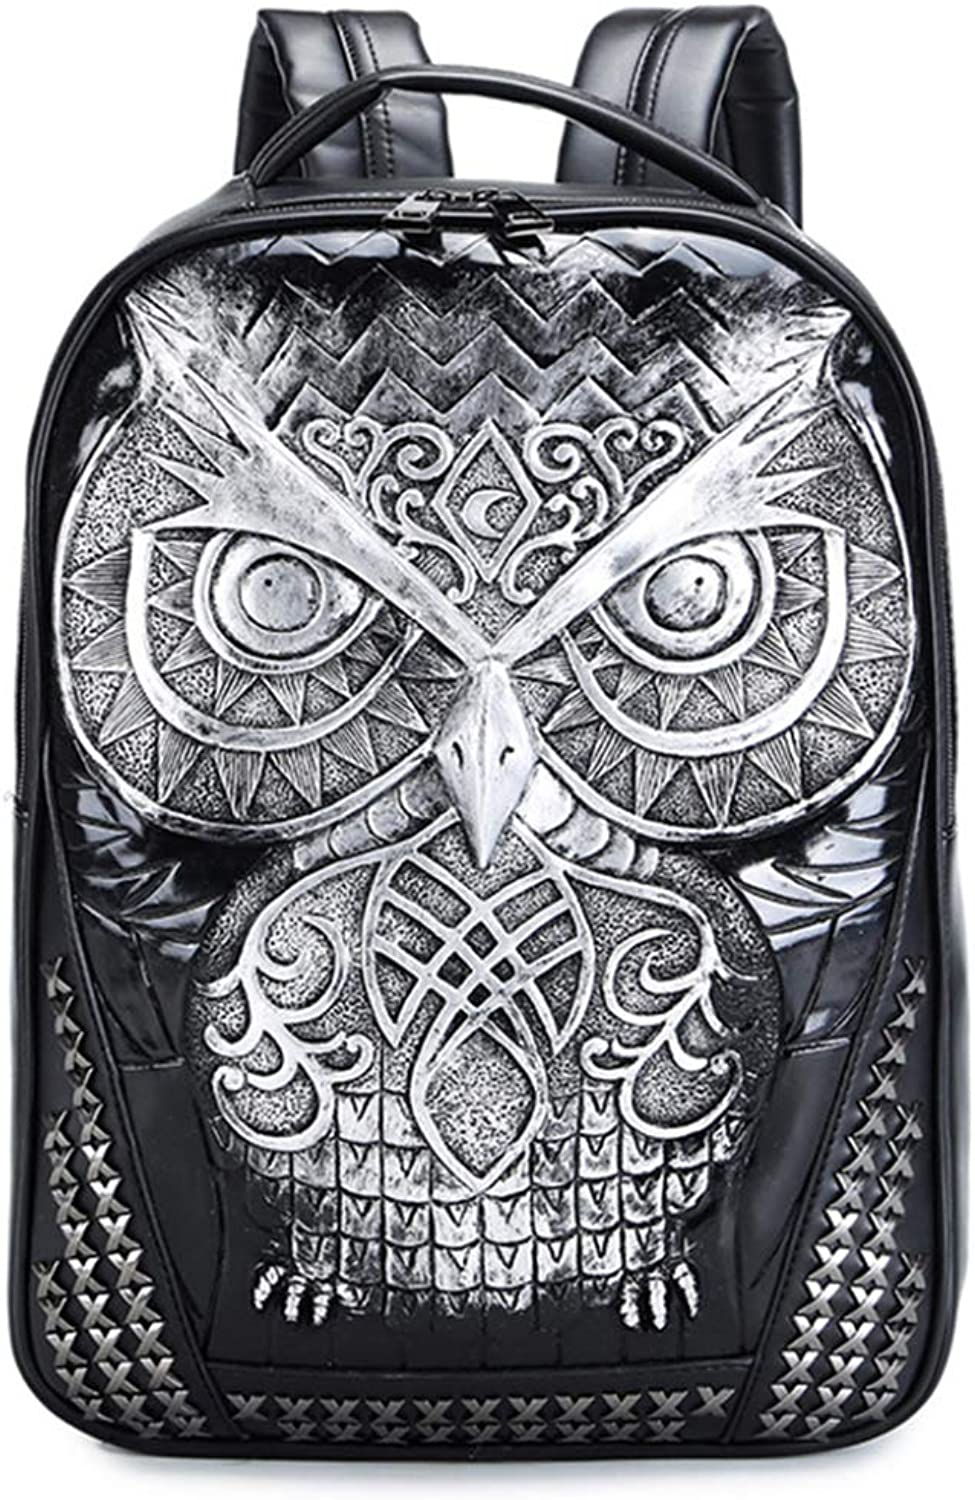 PLIENG Backpack Ladies Fashion 3D Owl Waterproof Laptop School Casual Travel Business Pack,Silver